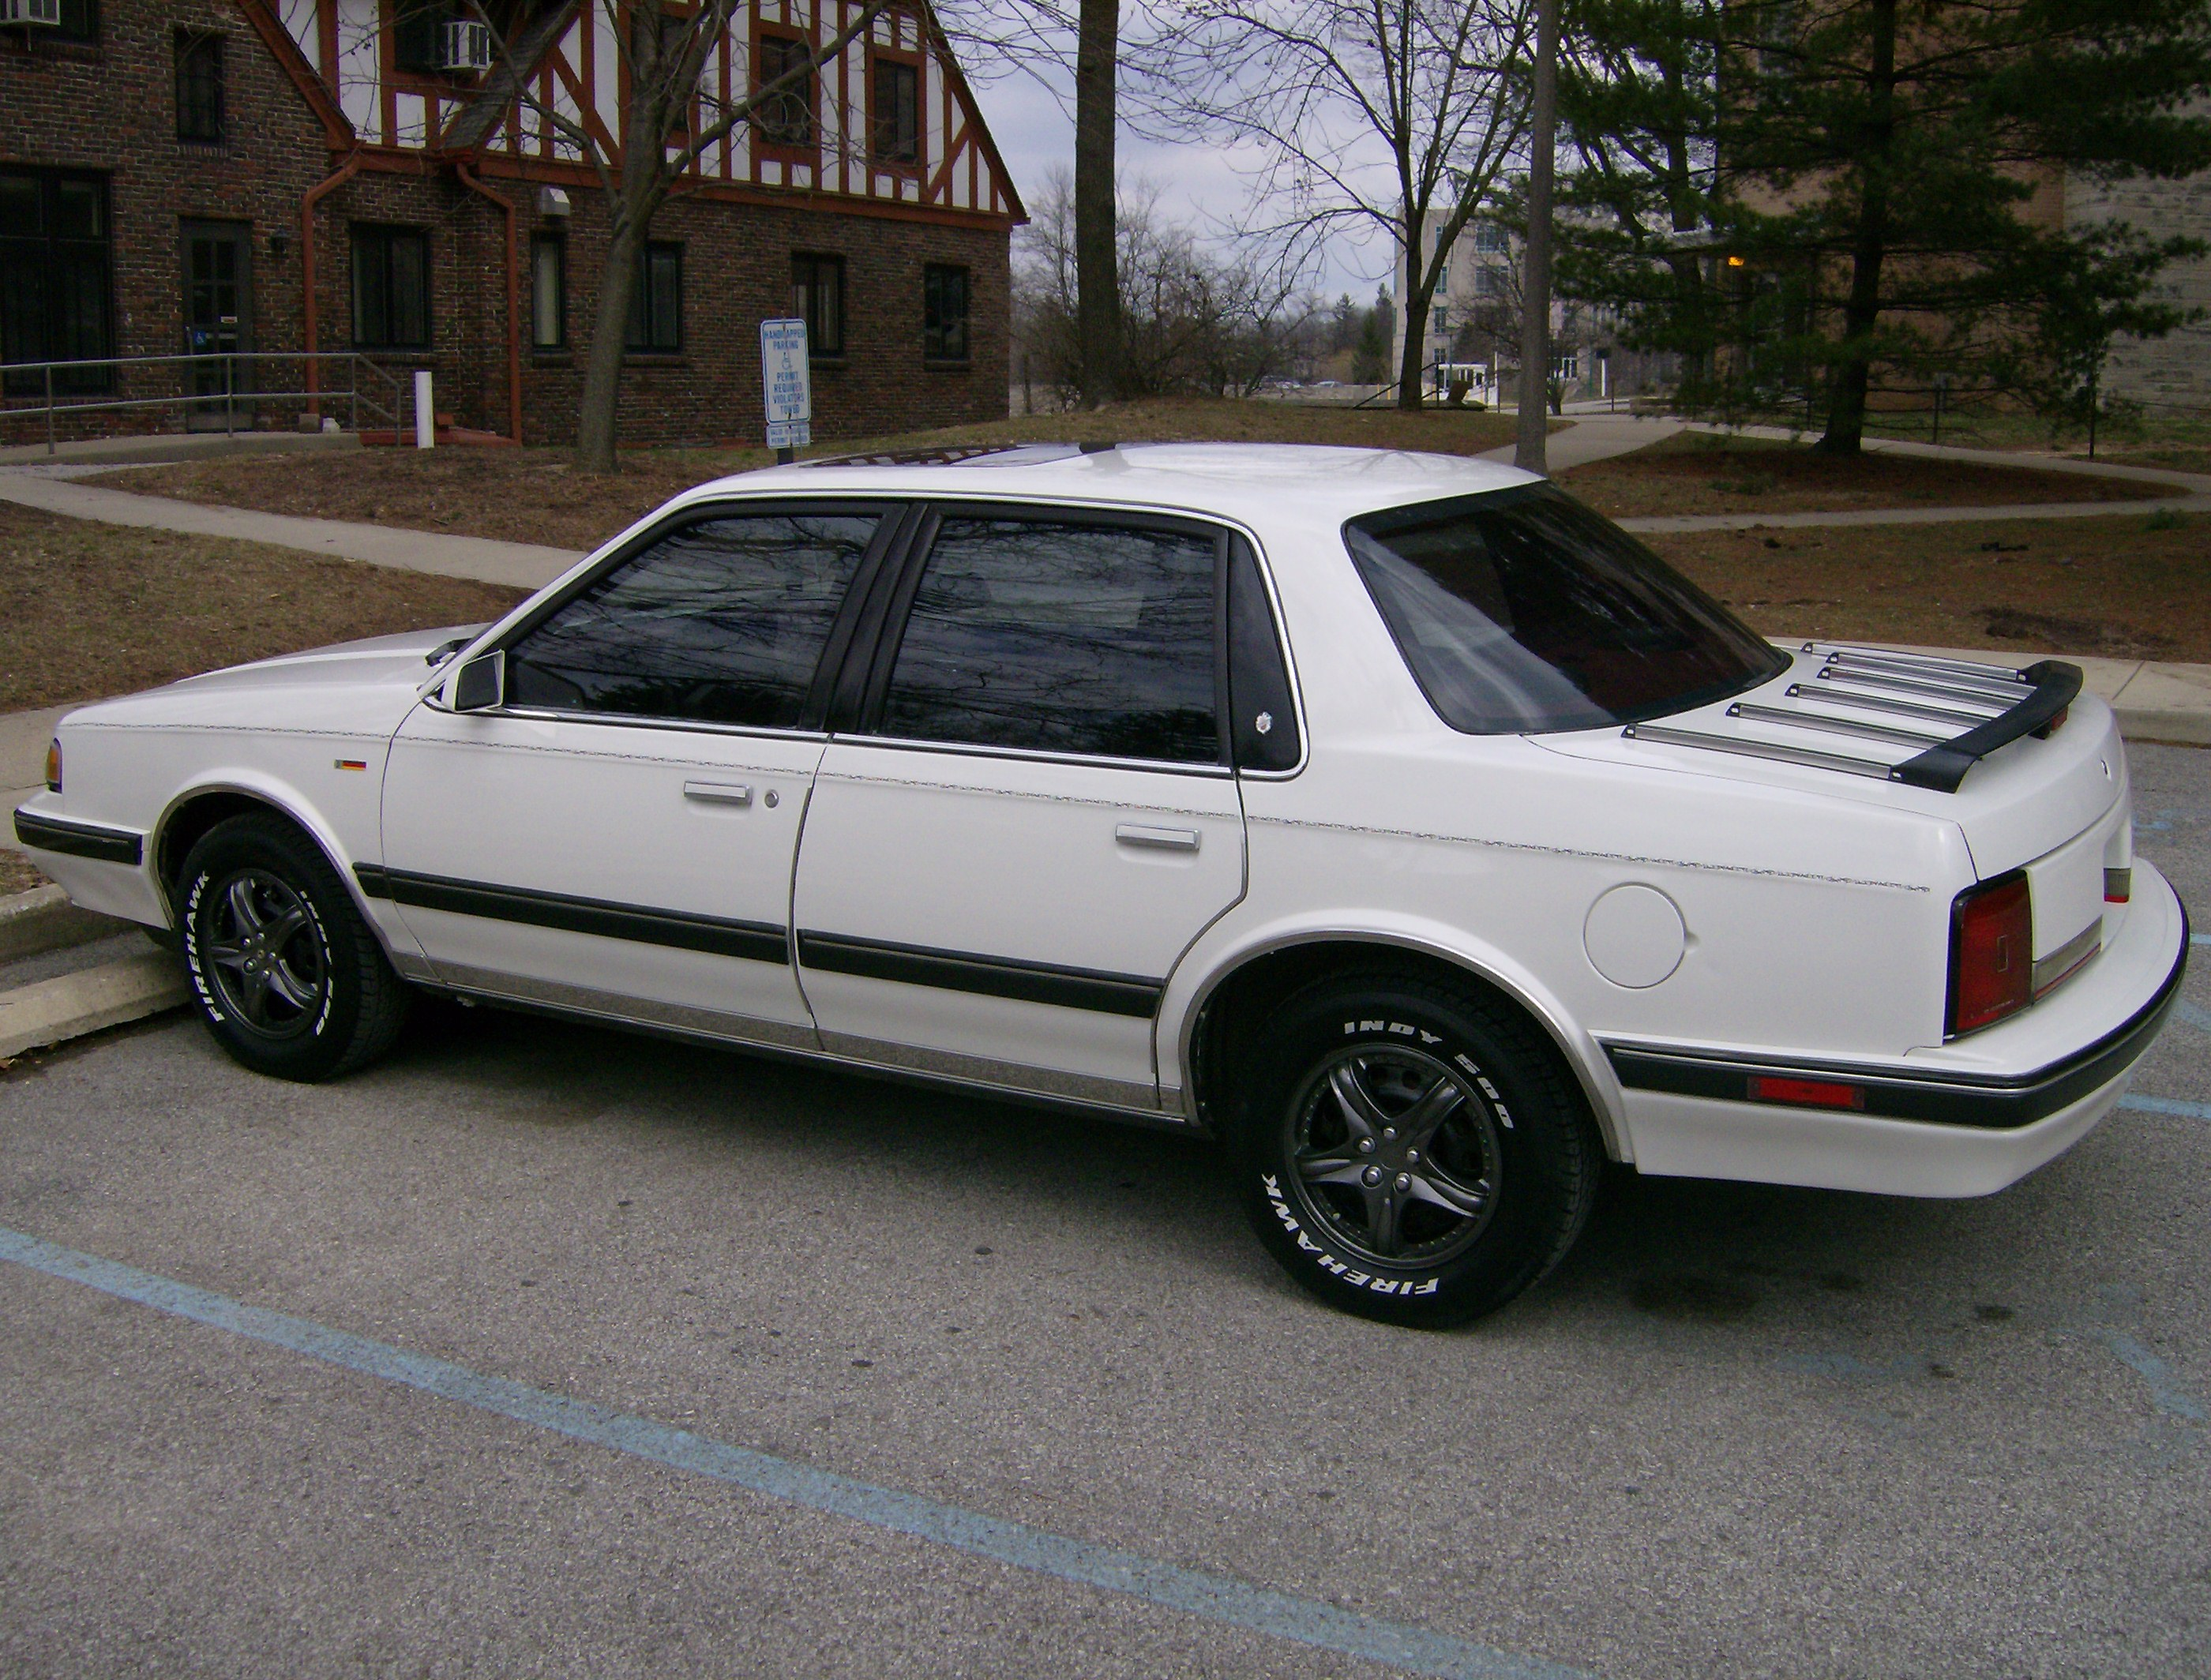 Oldsmobile Cutlass Ciera #6